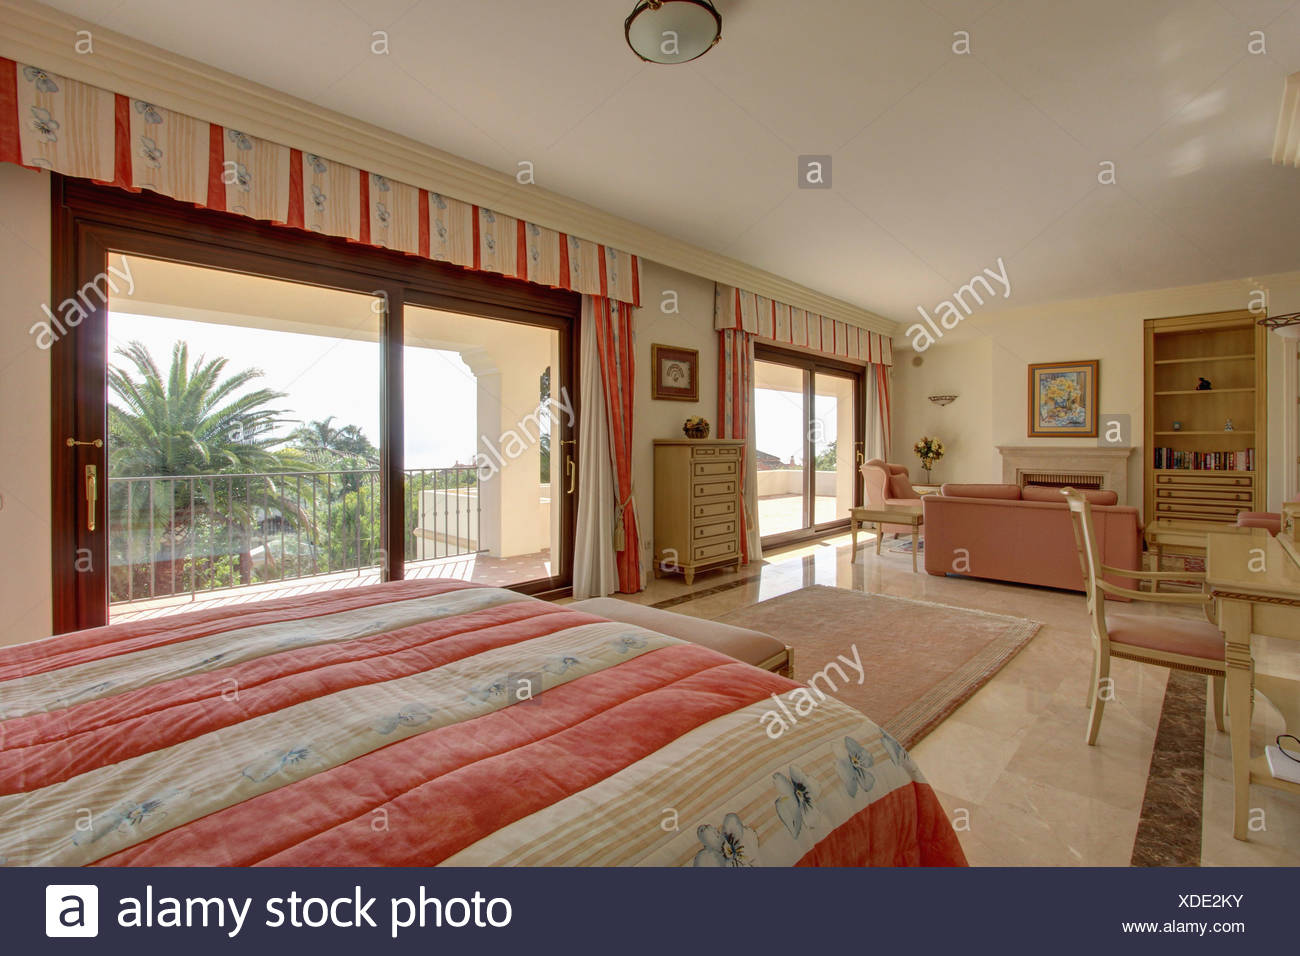 Pink Striped Quilt On Bed In Spanish Studio Apartment Bedroom With